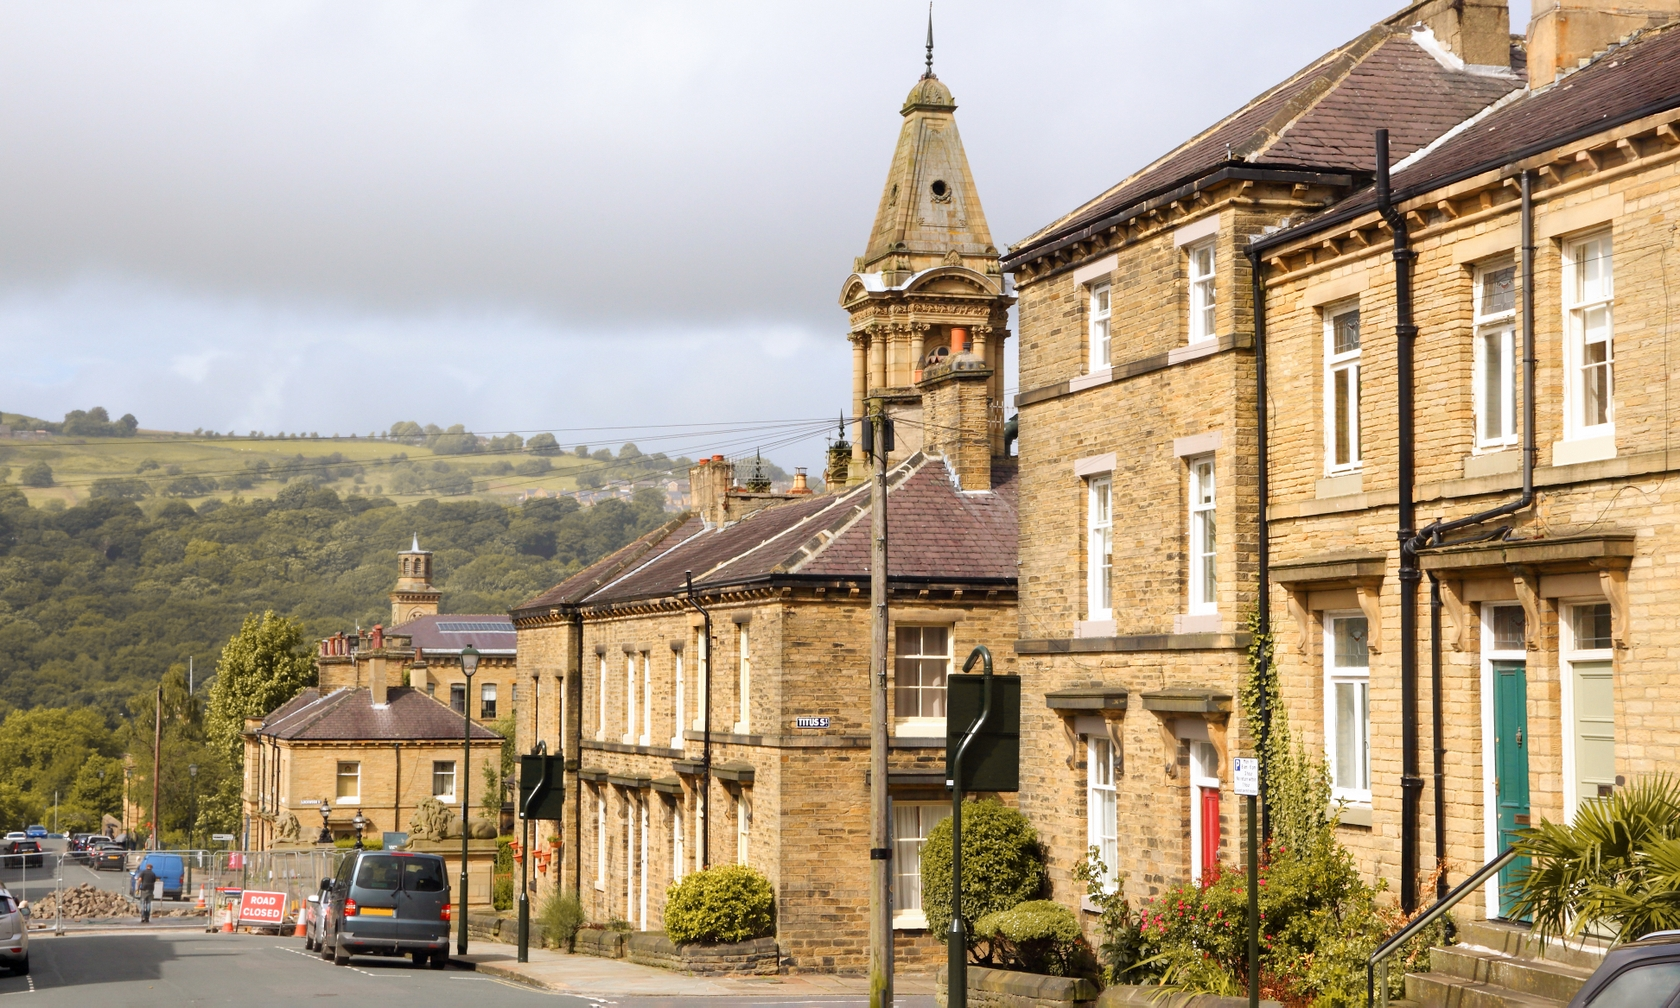 Holiday rental houses in Bradford